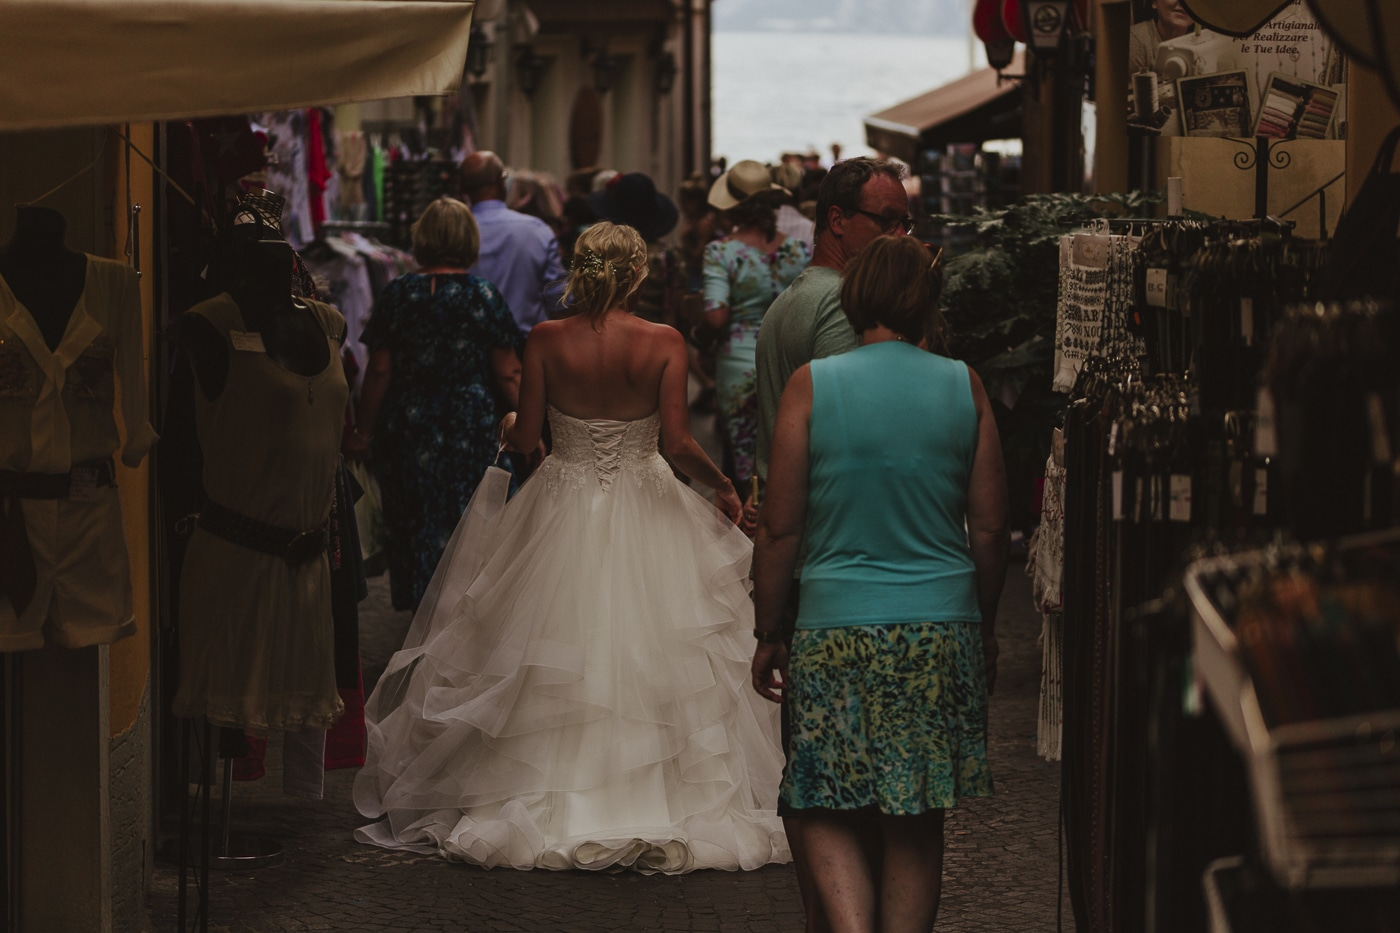 Bride in wedding dress walking through a local market with crowds of tourists and the lake in the distance by Joshua Wyborn